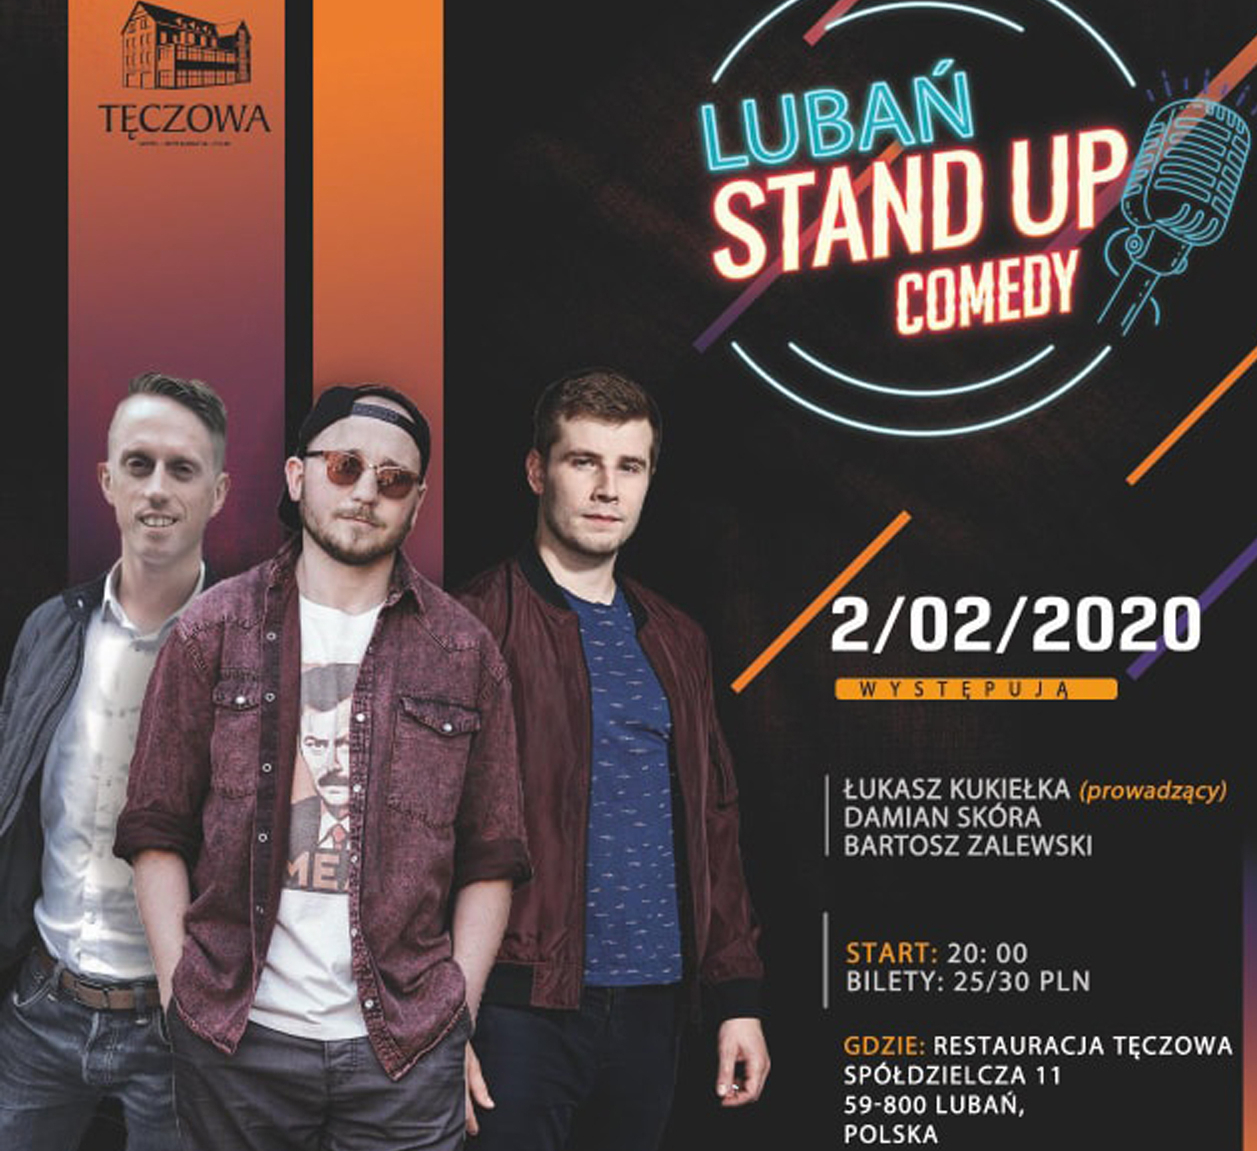 Lubań Stand Up Comedy